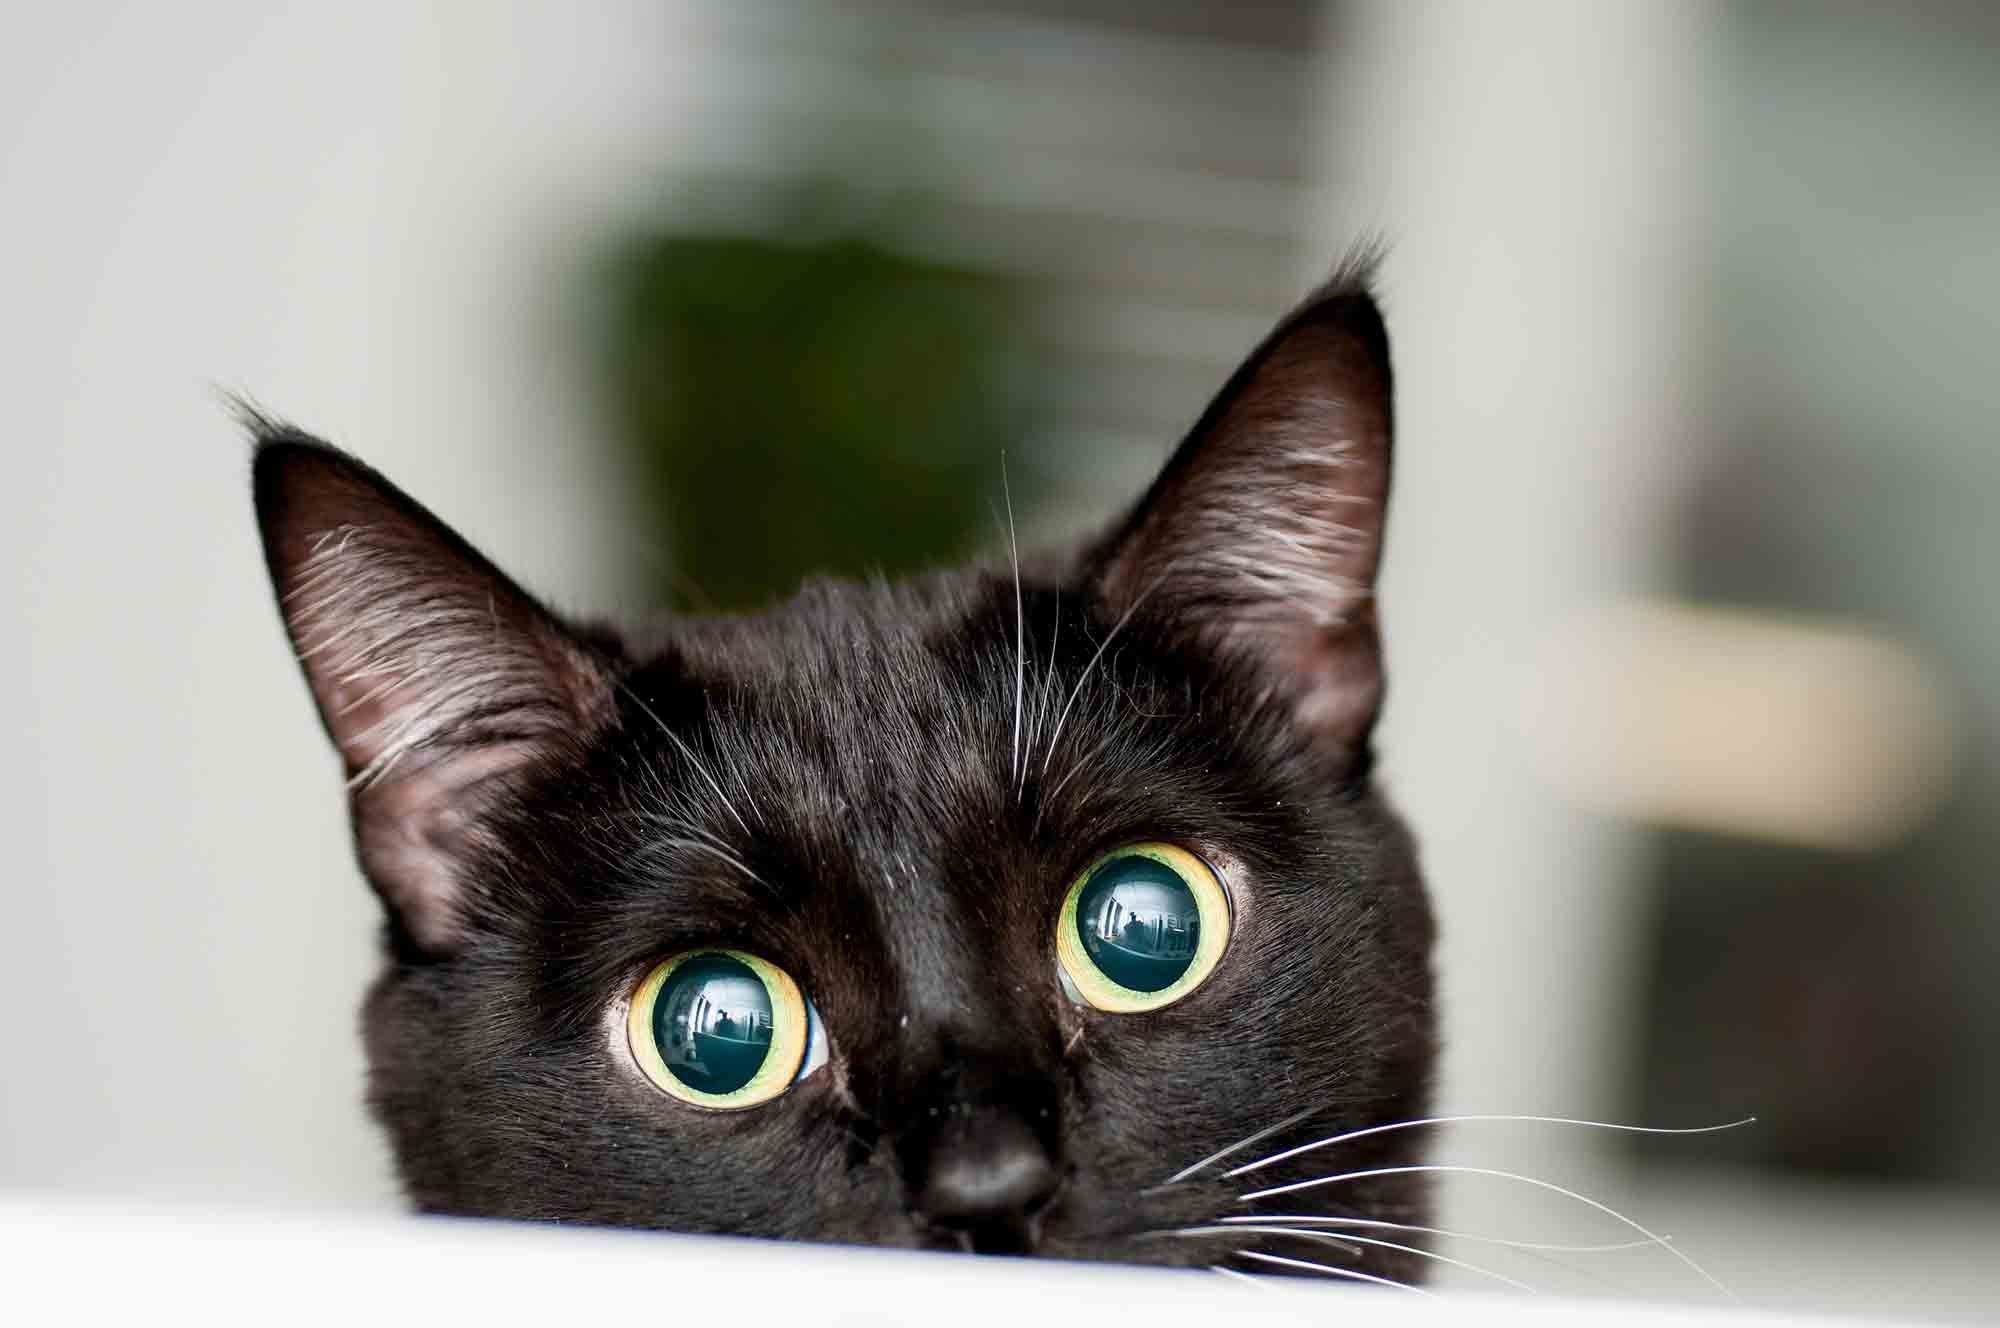 A black cat, with wide eyes, peeks up at the camera.